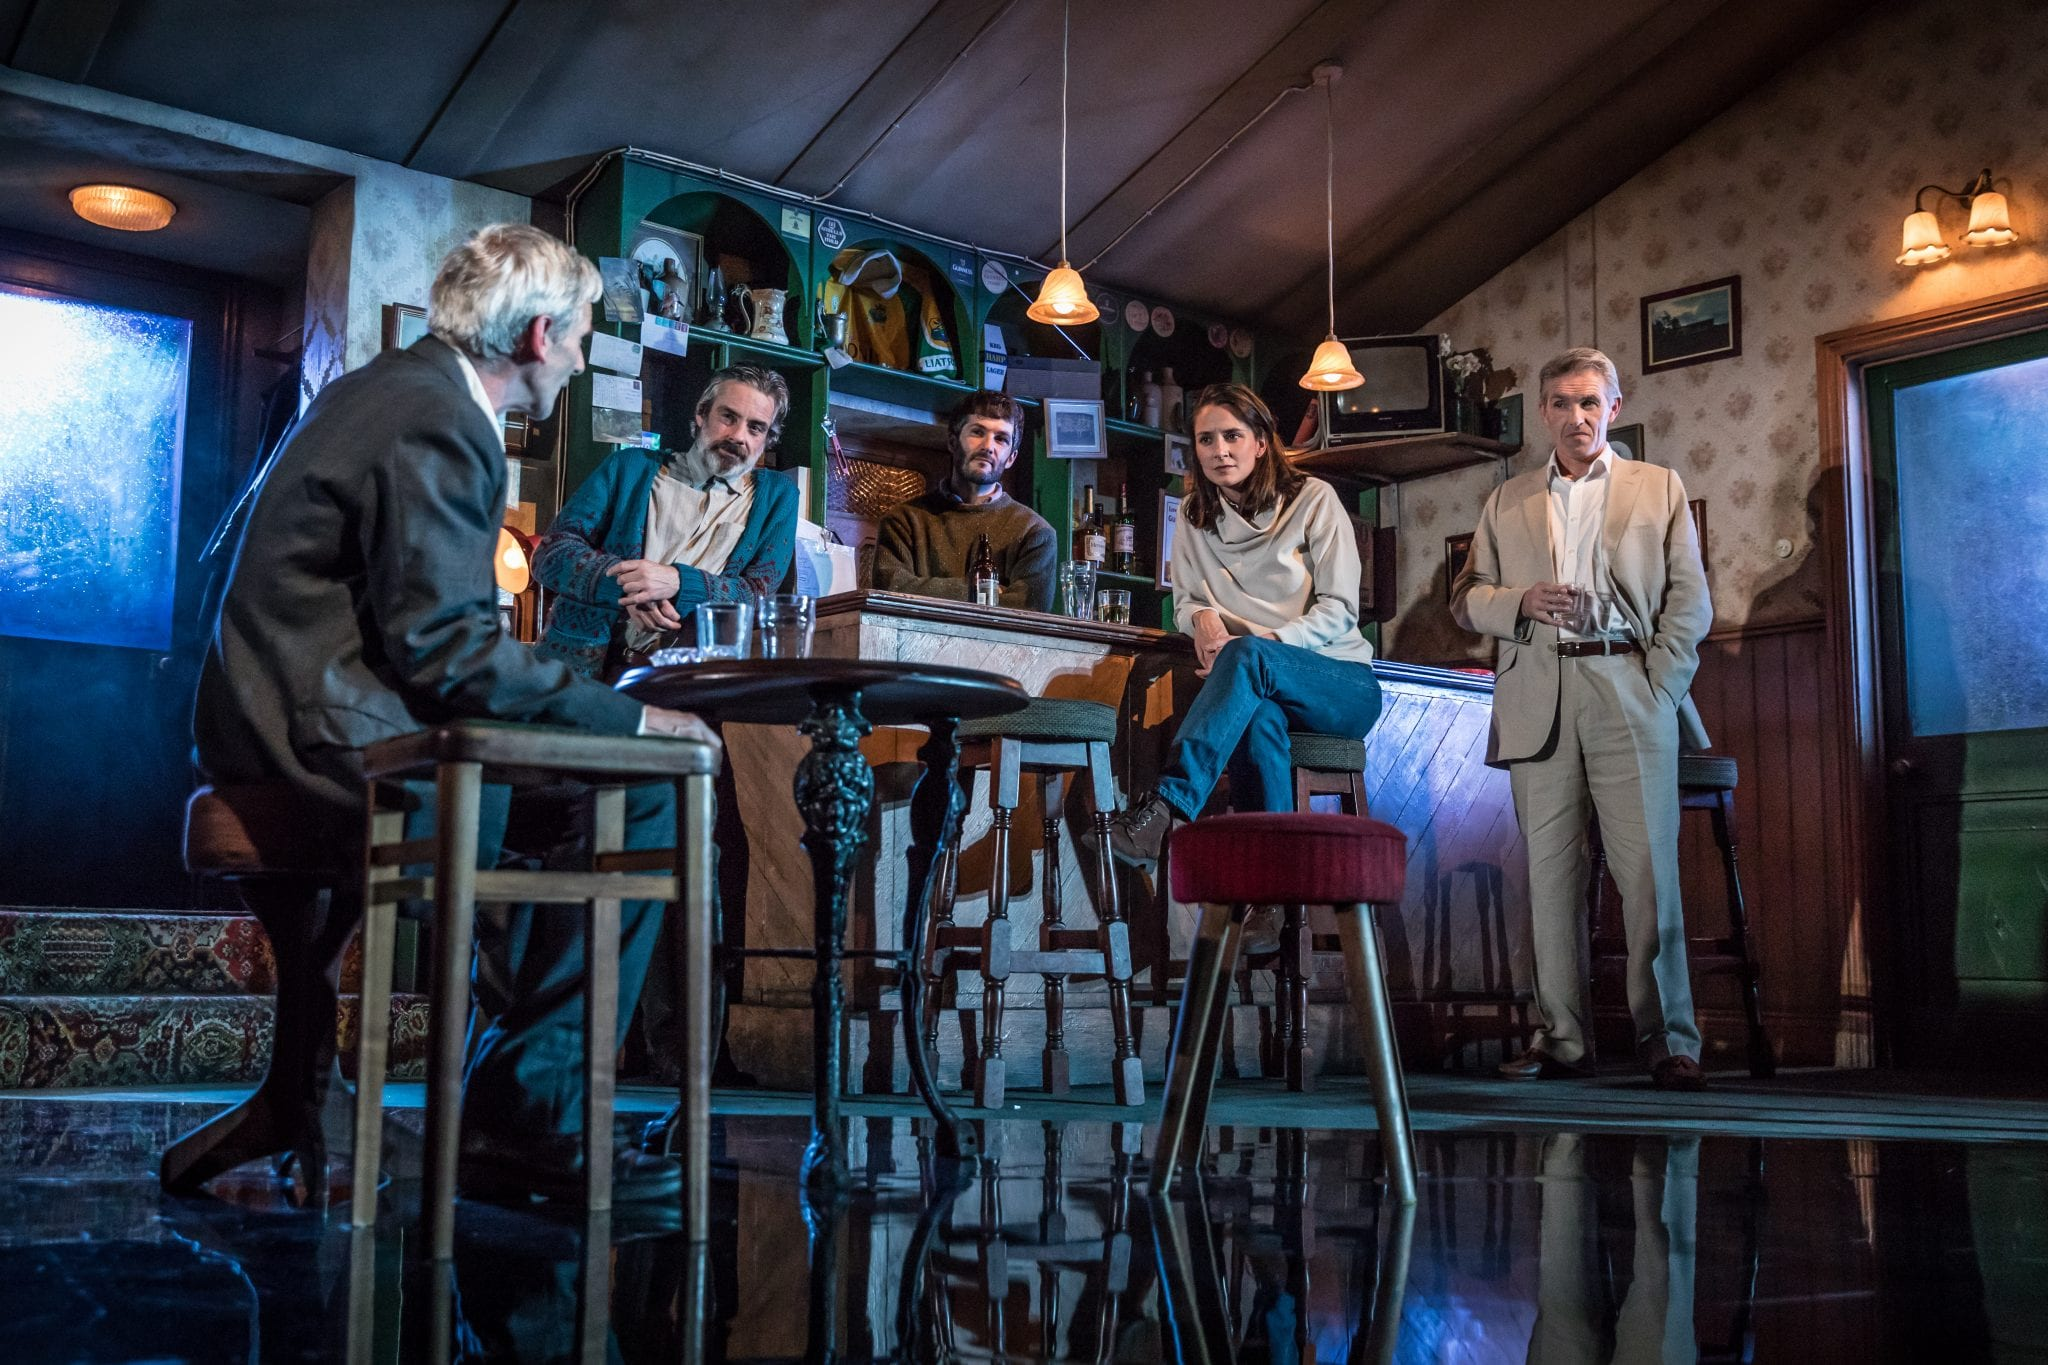 Sean Murray (Jack), John O'Dowd (Jim), Sam O'Mahony (Brendan), Natalie Radmall-Quirke (Valerie) & Louis Dempsey (Finbar) - The Weir - Photography by Marc Brenner